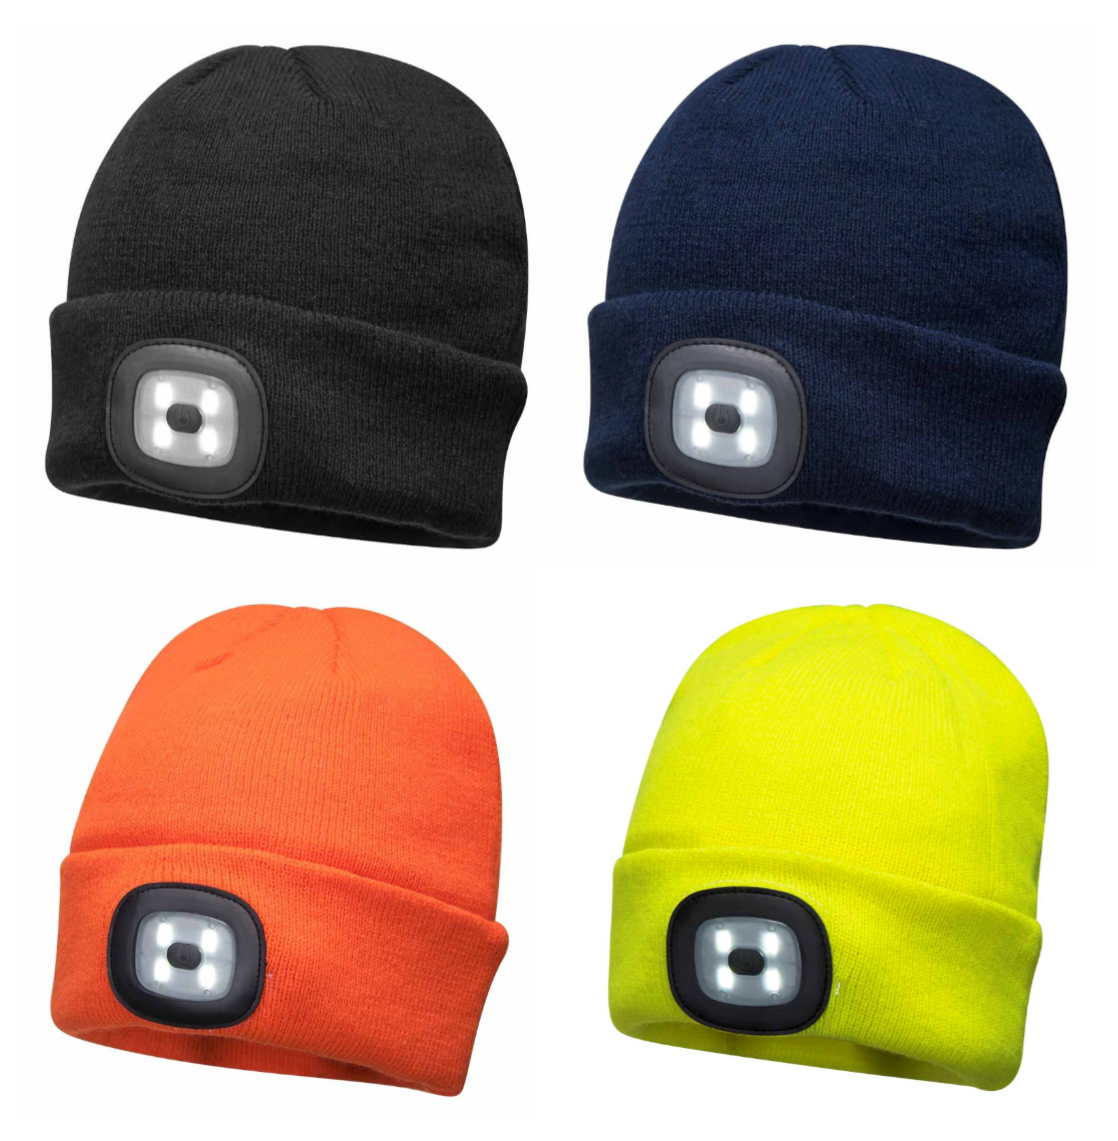 1x LED Beanie USB Rechargeable Twin Torch Lighting Cap Head Light Hat Bike Black